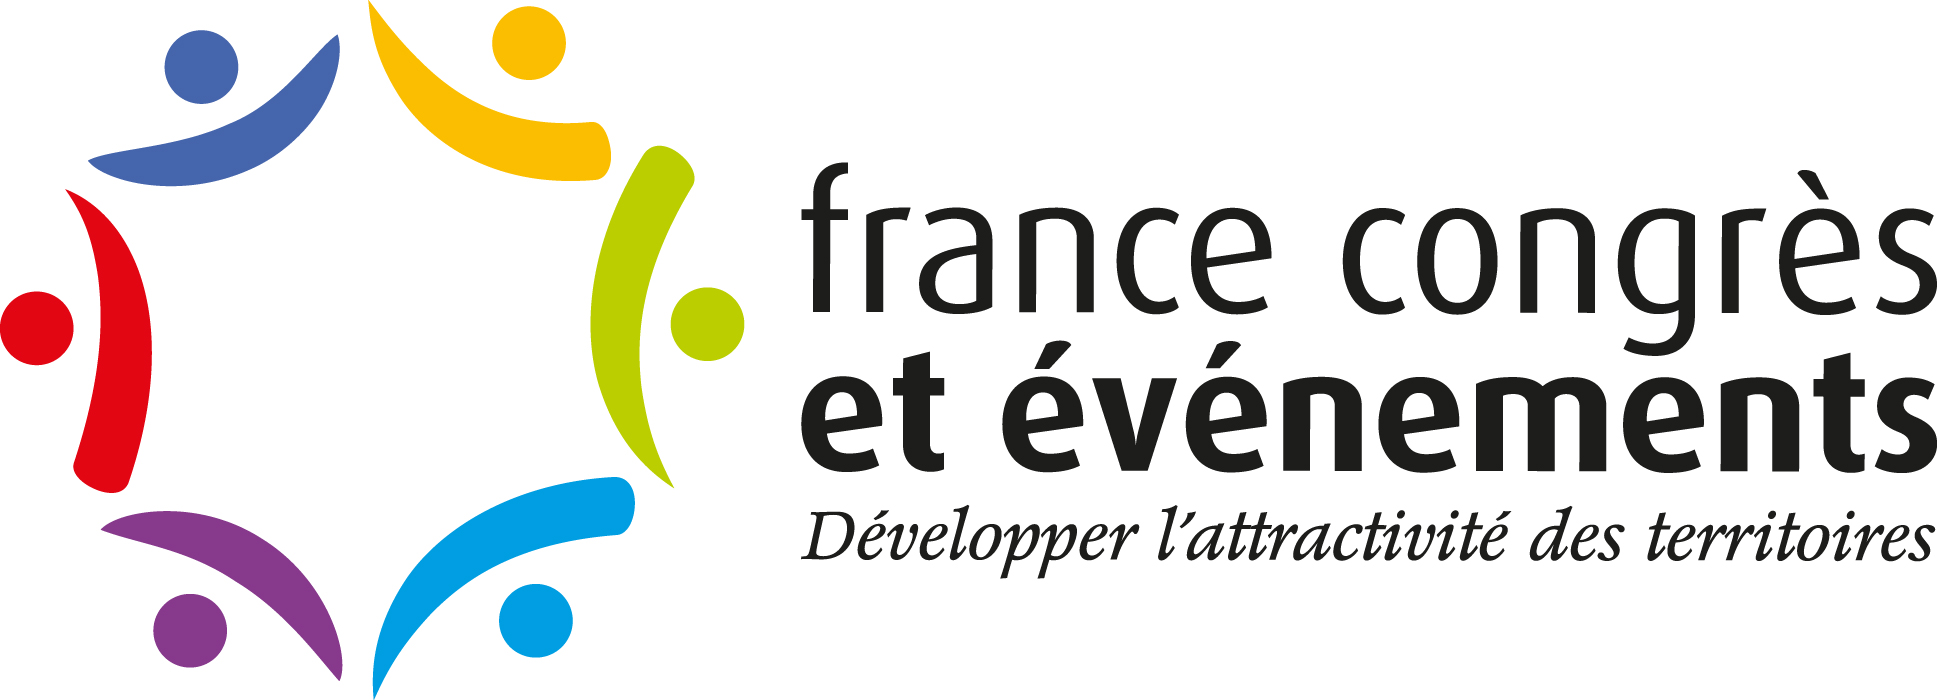 Logo francecongresevenements